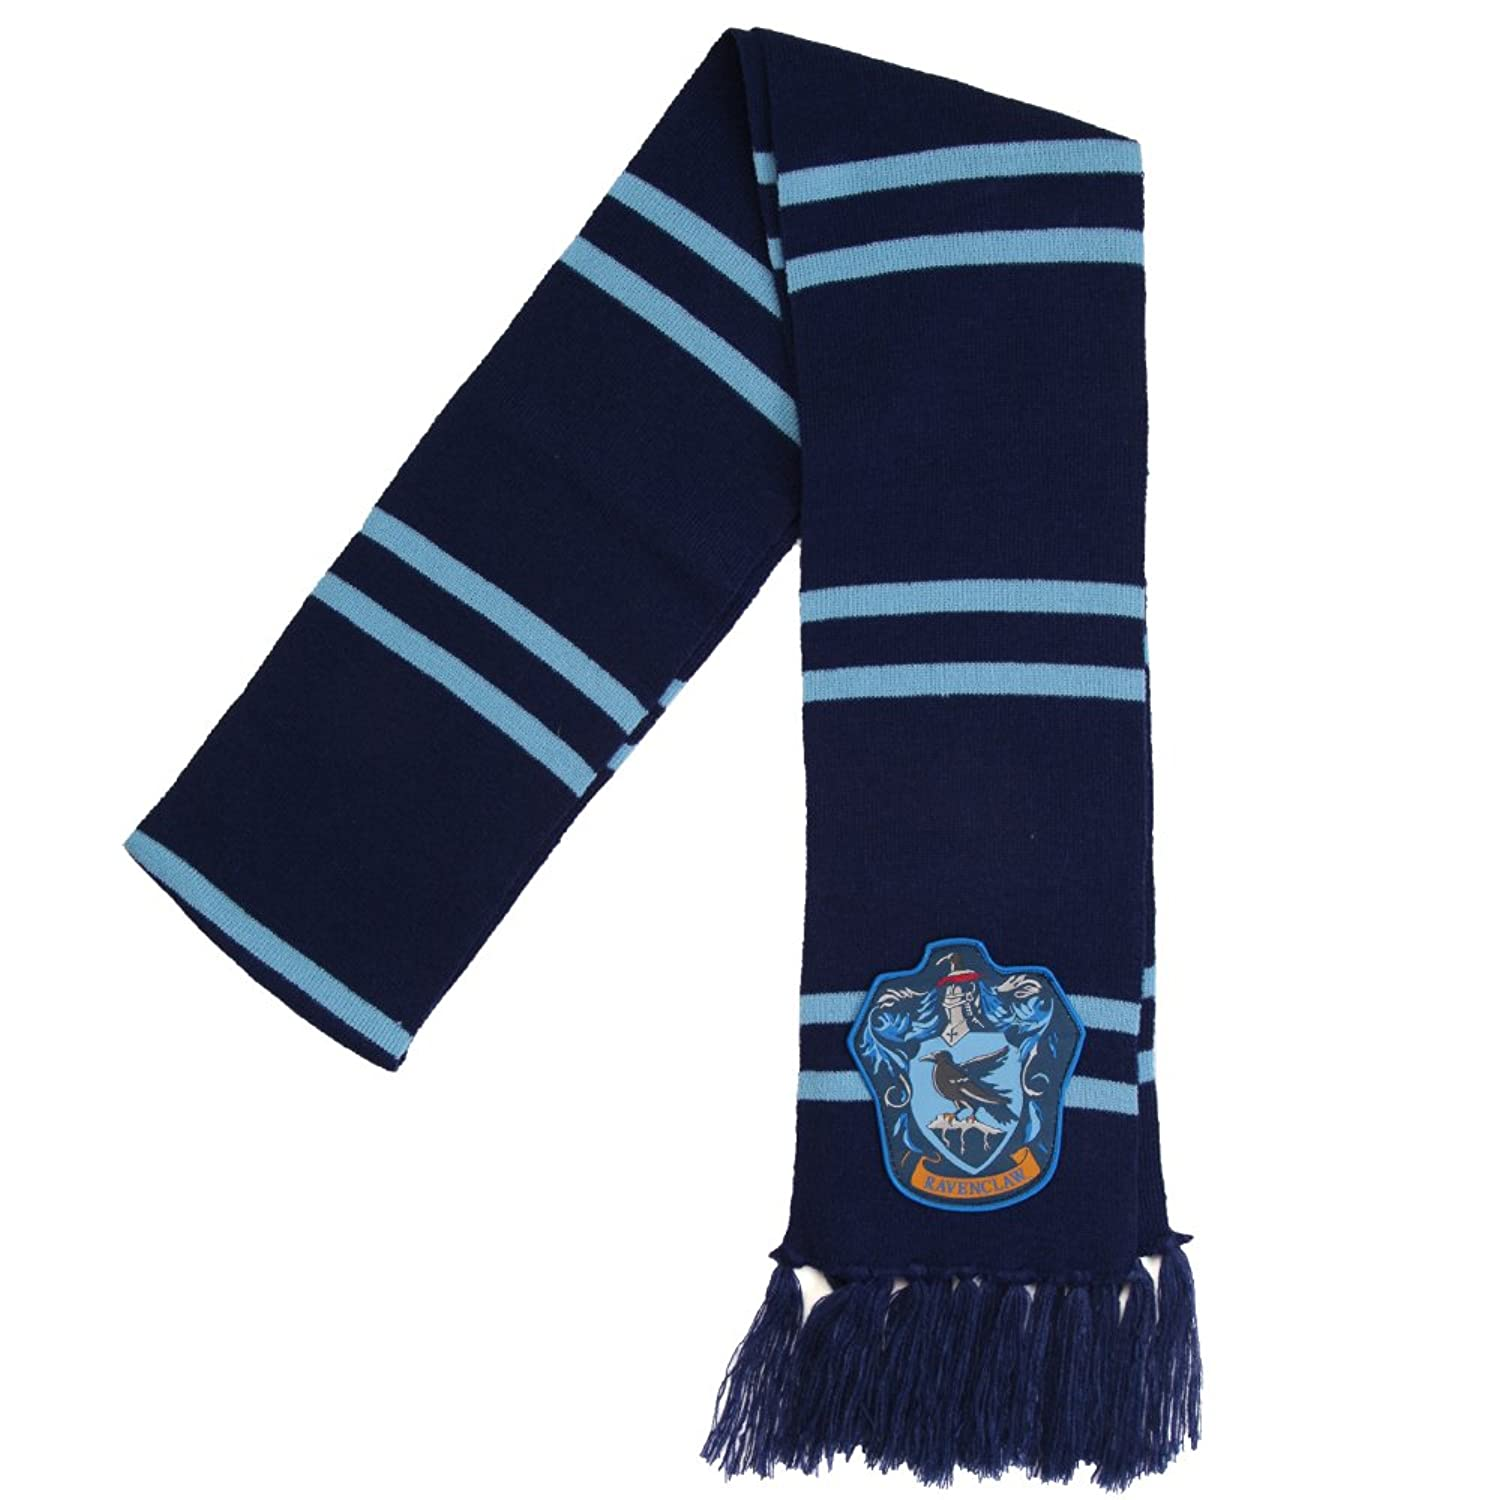 Amazon.com: Harry Potter Ravenclaw House Knit Winter Scarf: Clothing